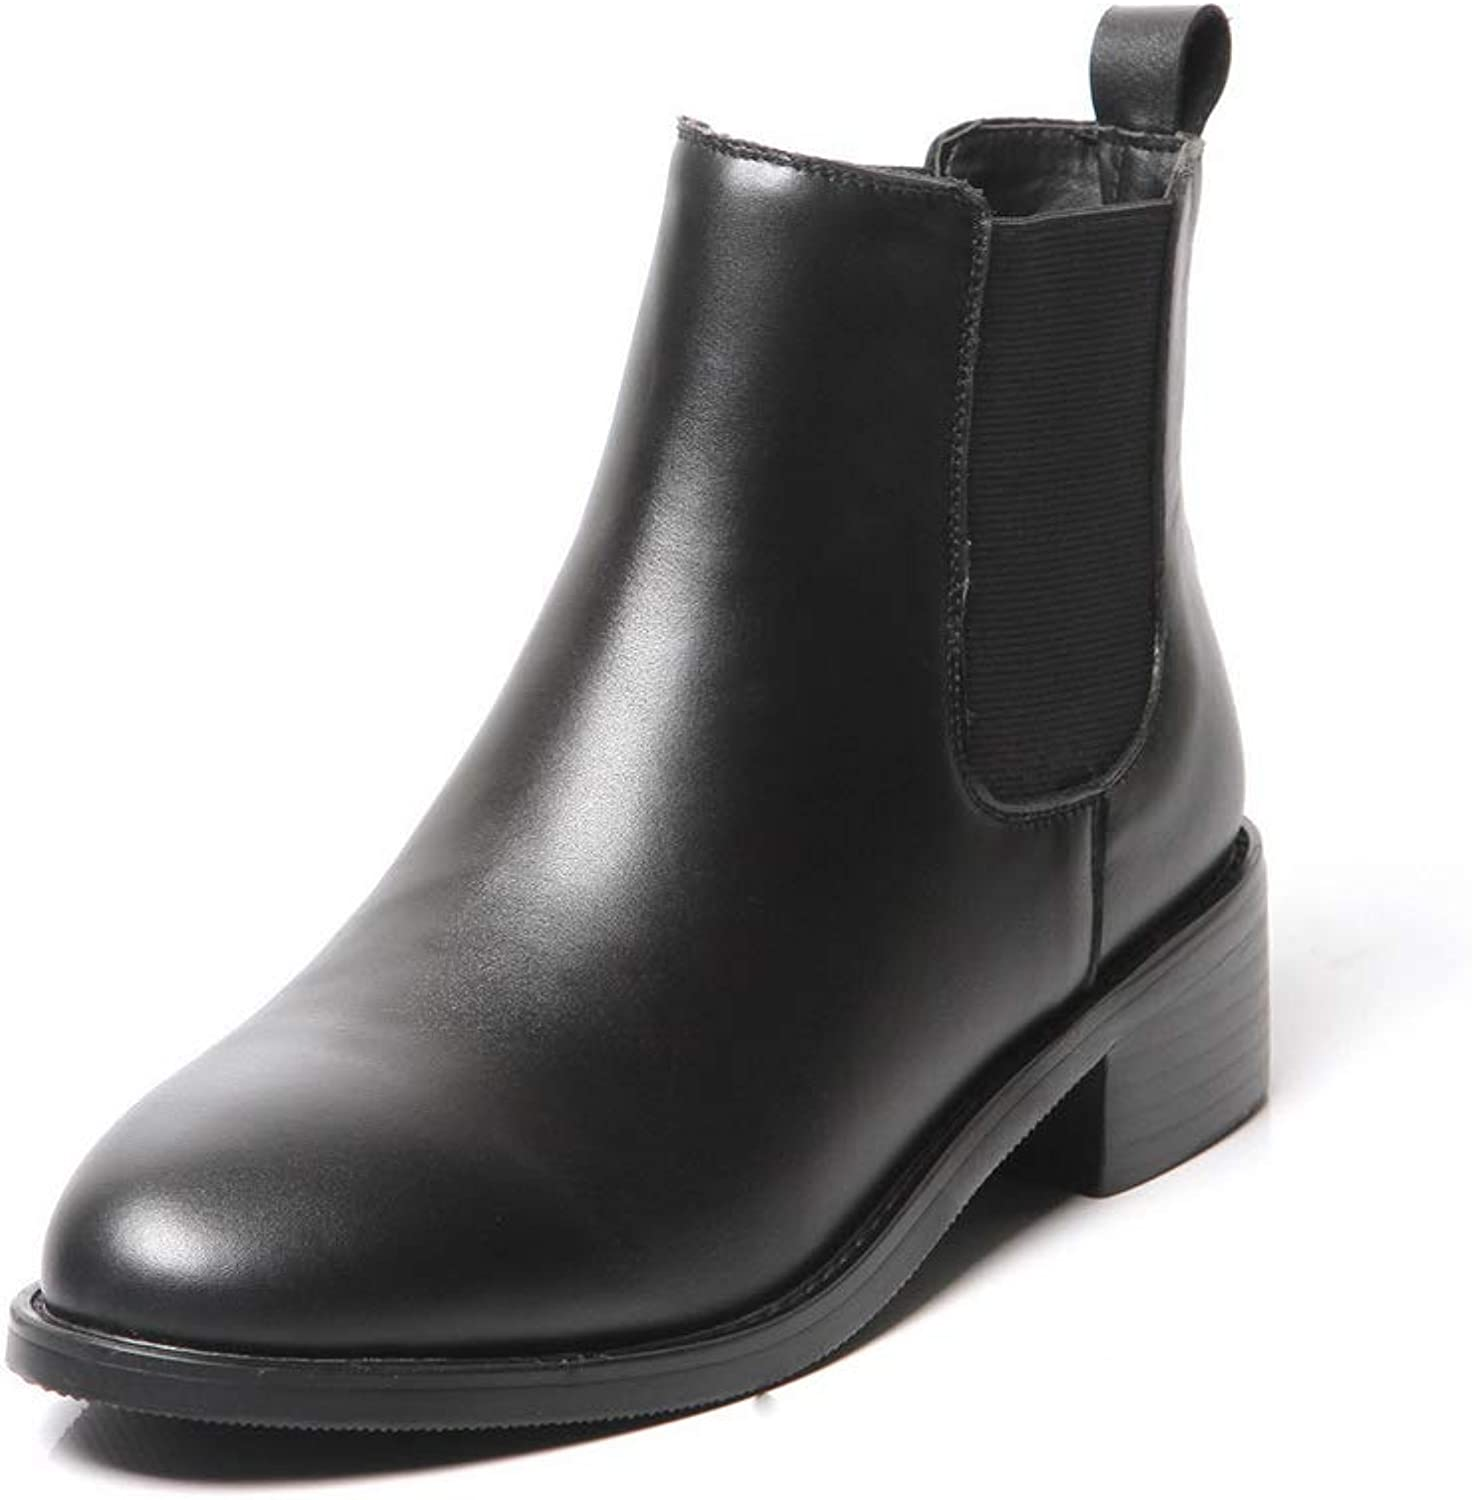 AdeeSu Womens Solid Fabric Smooth Leather Urethane Boots SXE04858